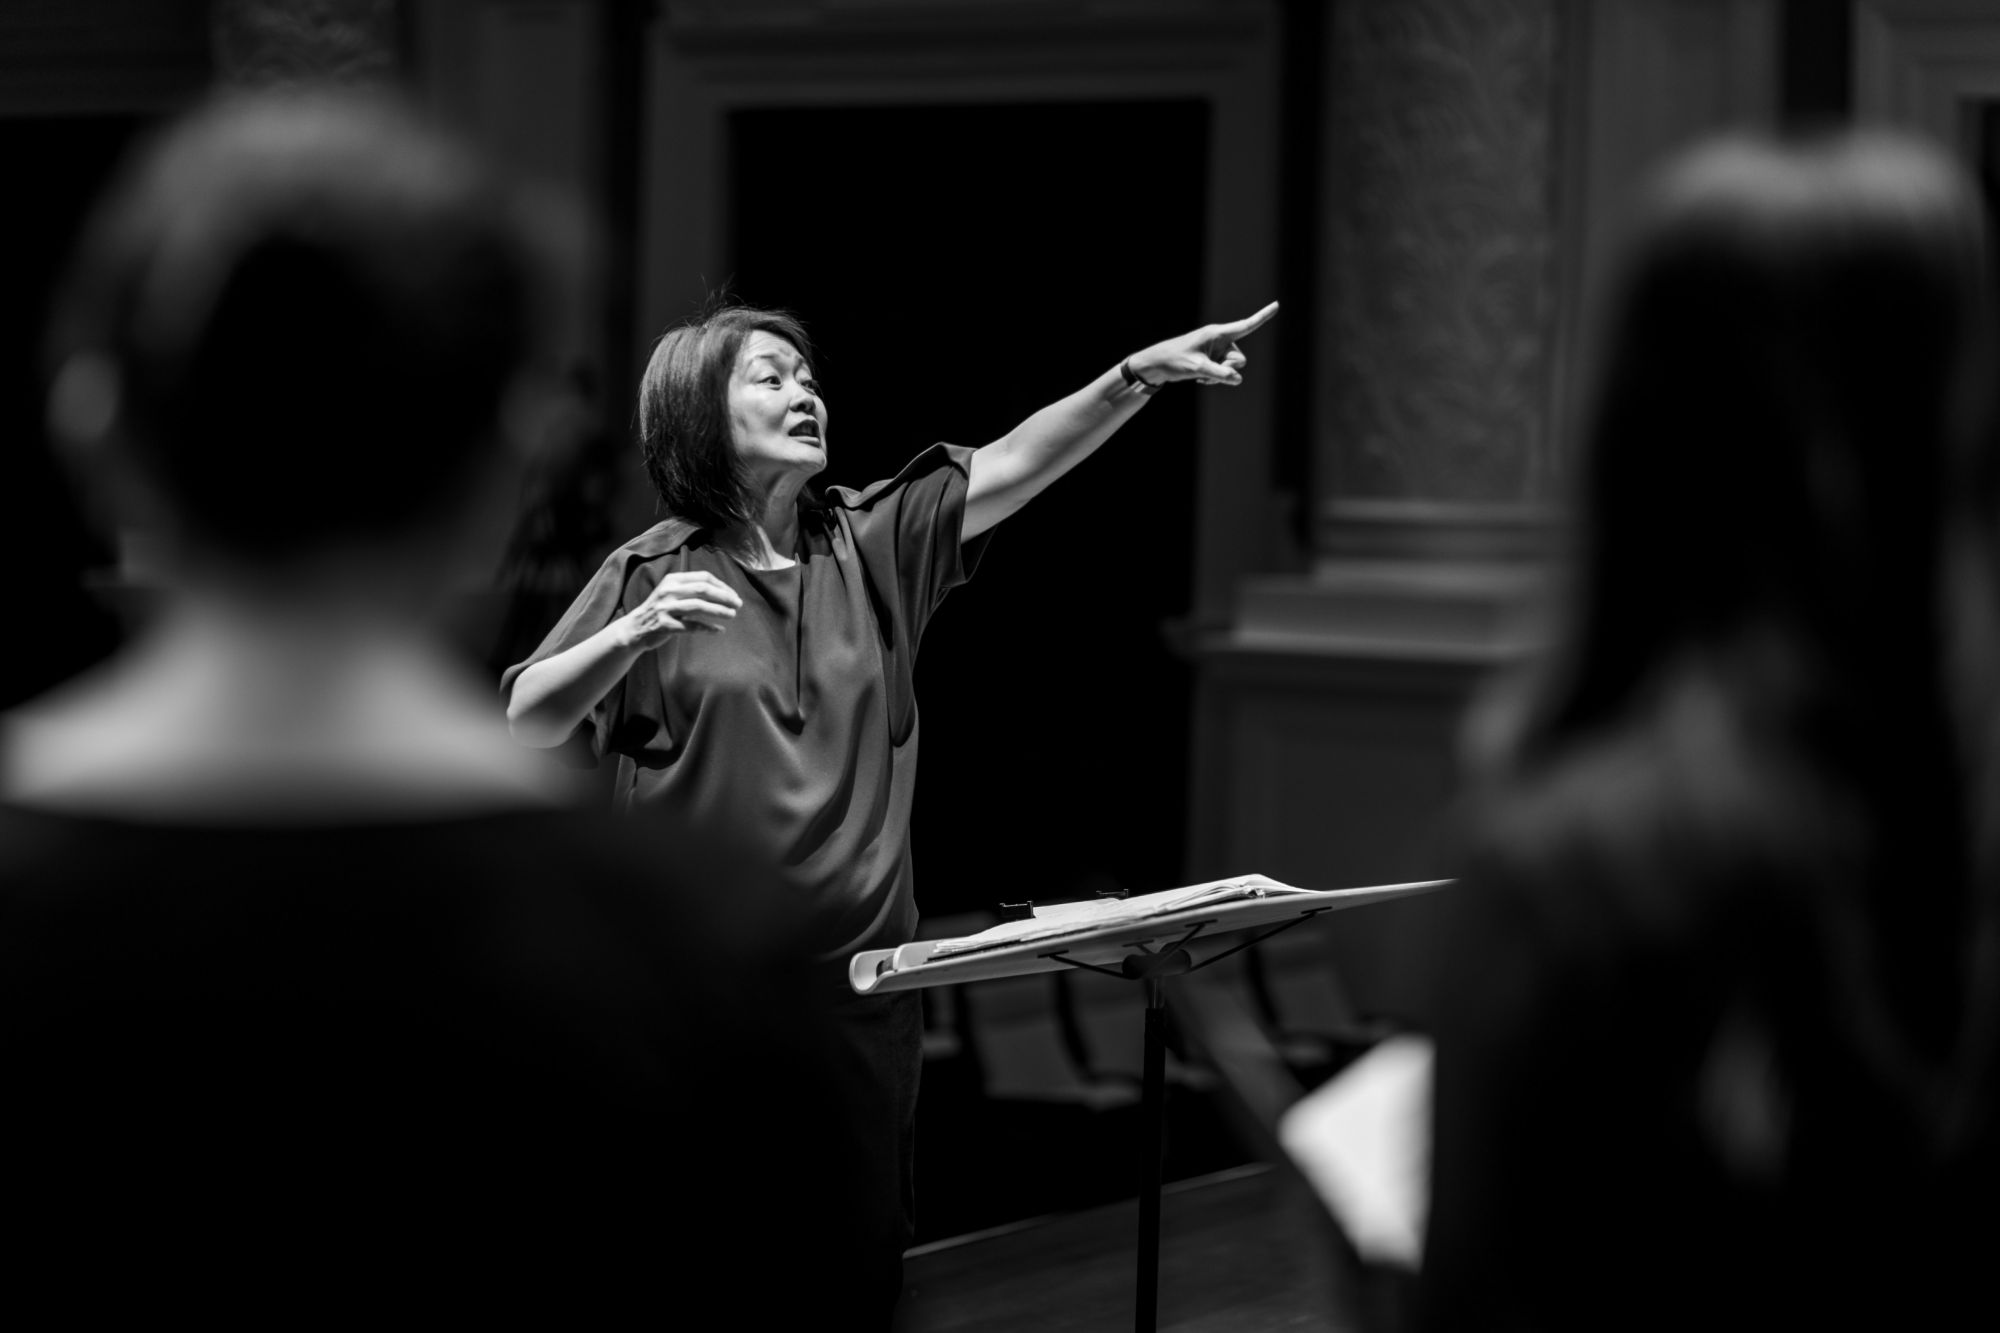 Choirmaster Wong Lai Foon on Nurturing Young Choral Talents in Singapore